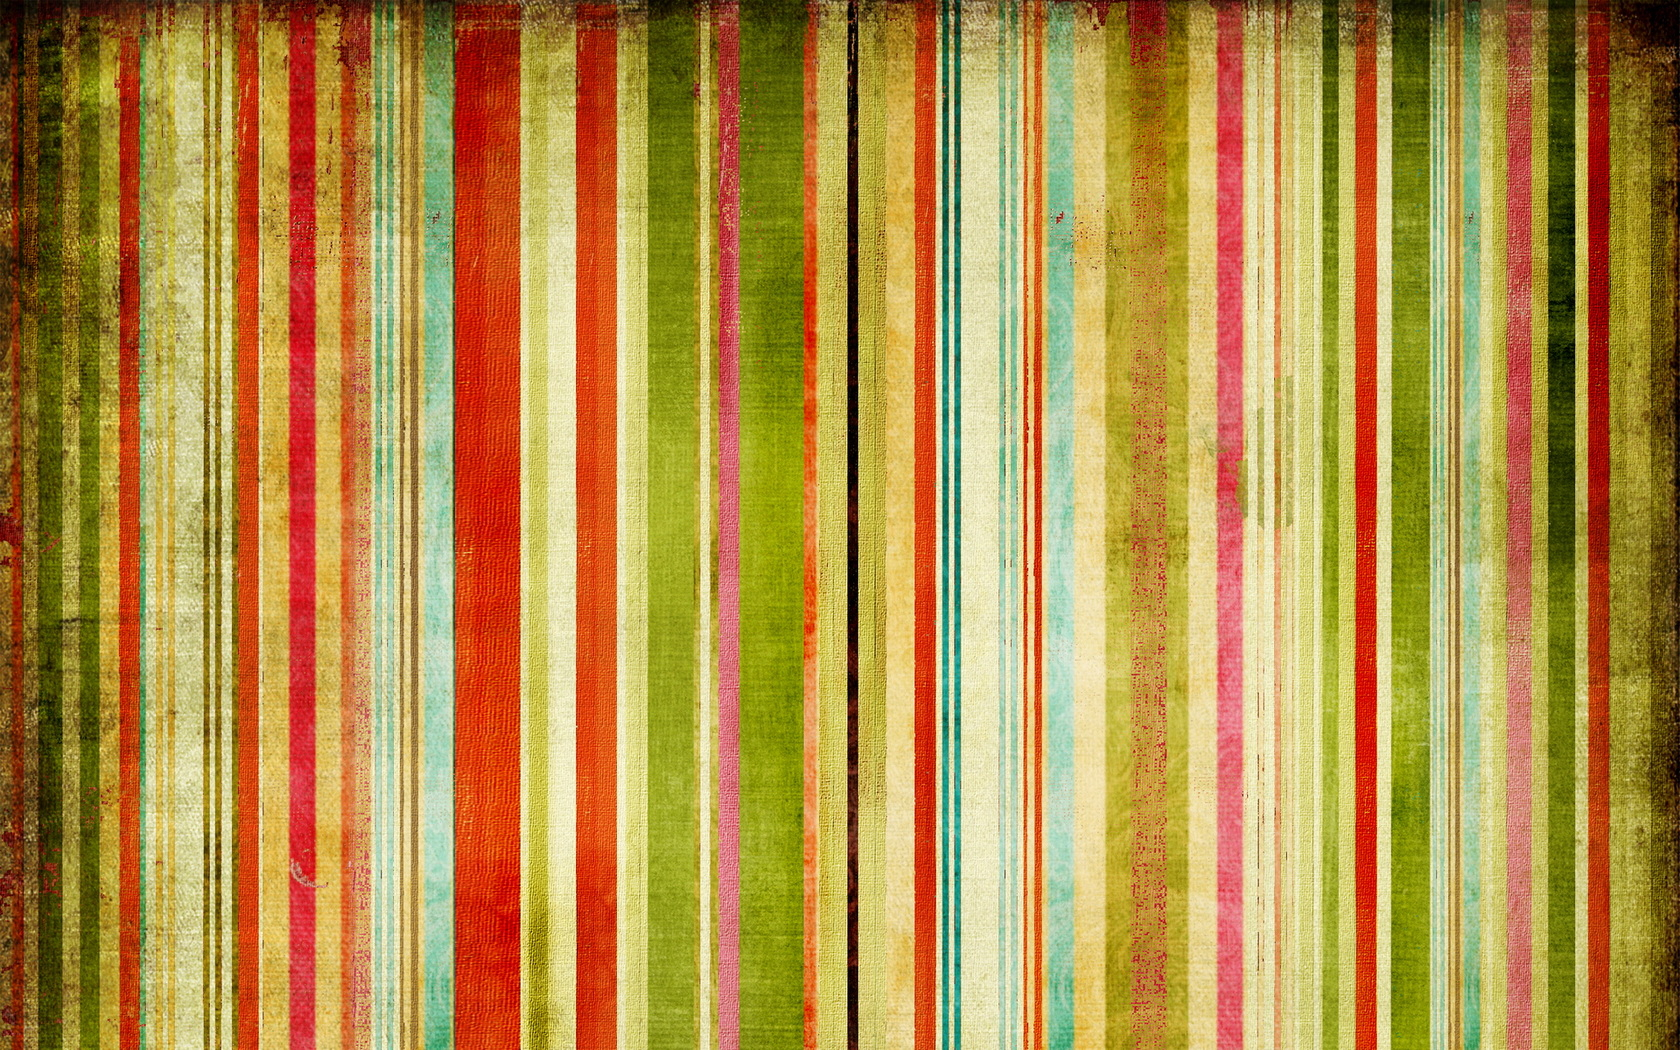 Striped wallpaper wallpapers and images - download wallpapers